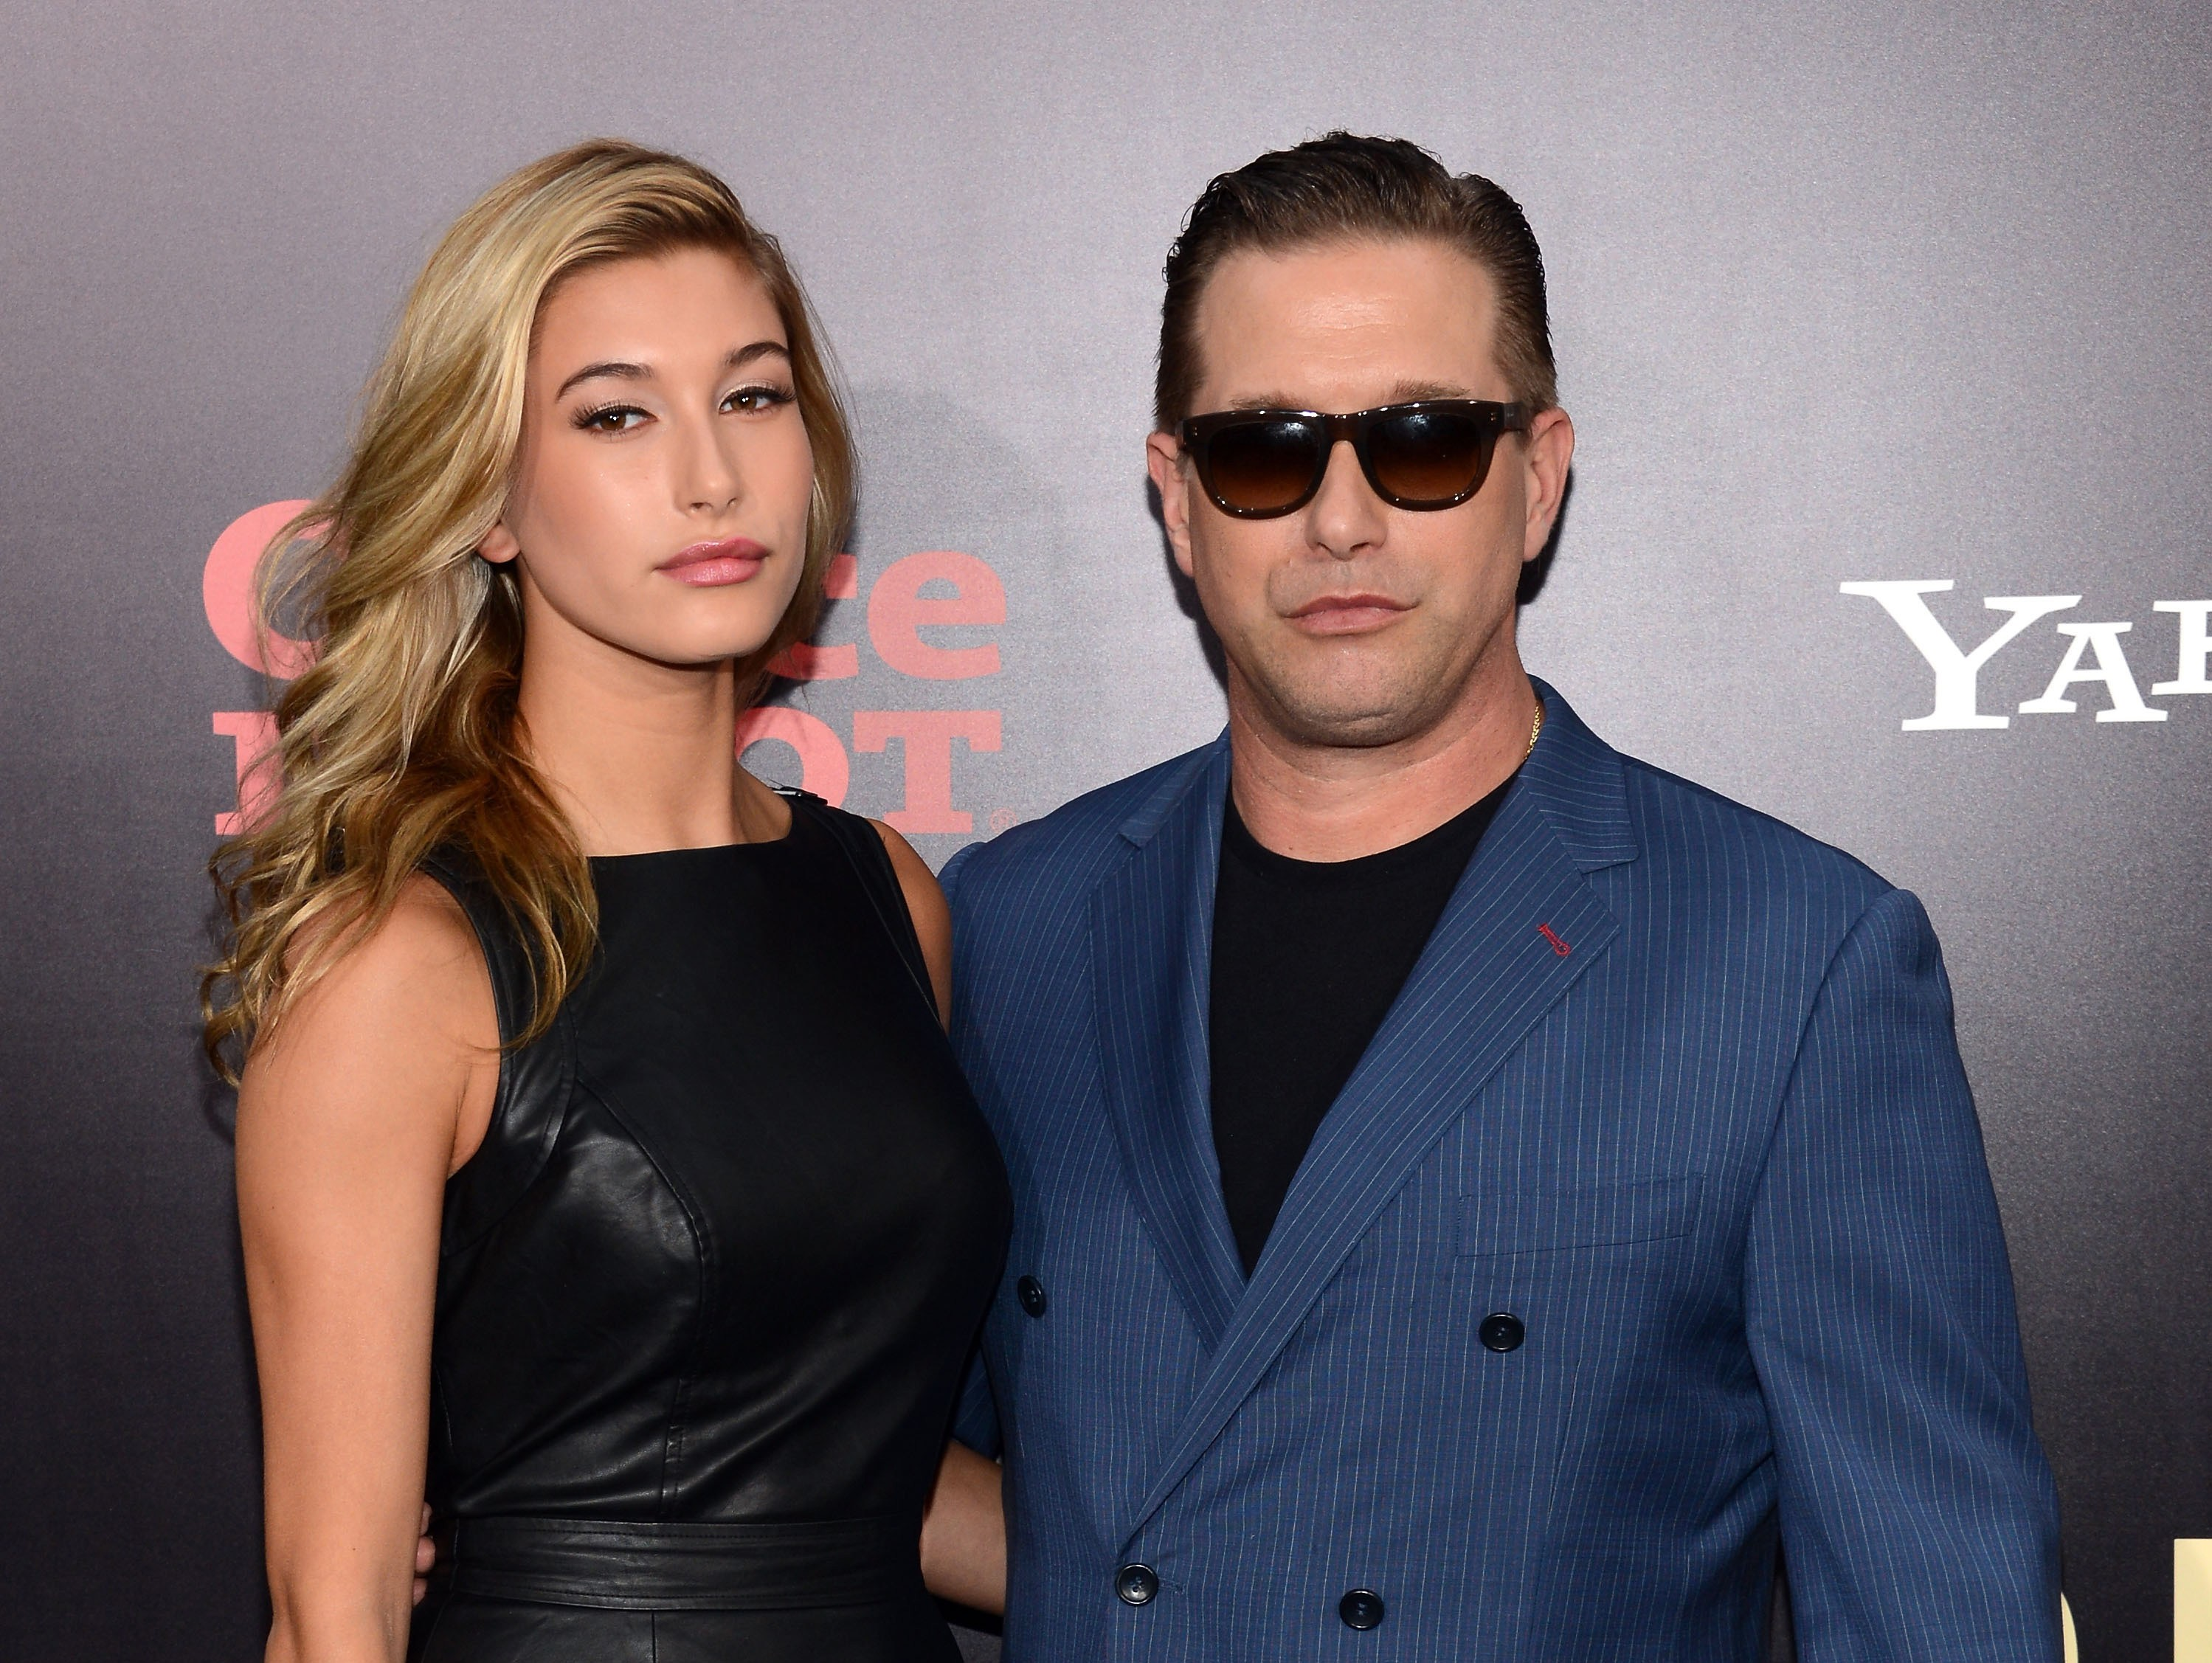 Hailey Baldwin e Stephen Baldwin (Foto: Getty Images)